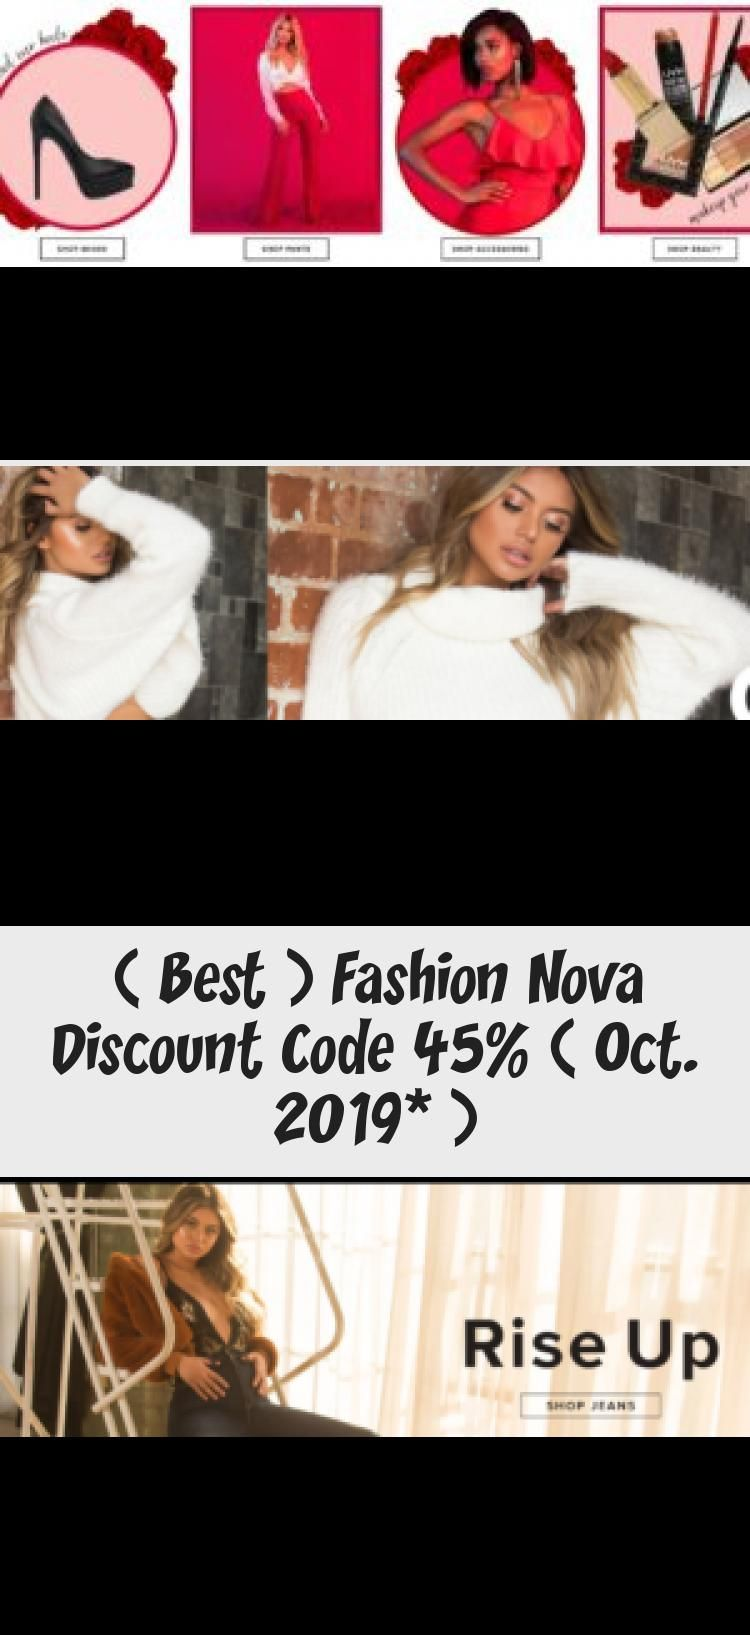 Best Fashion Nova Discount Code 45 Oct 2019 In 2020 Fashion Nova Discount Fashion Nova Fashion Nova Coupon